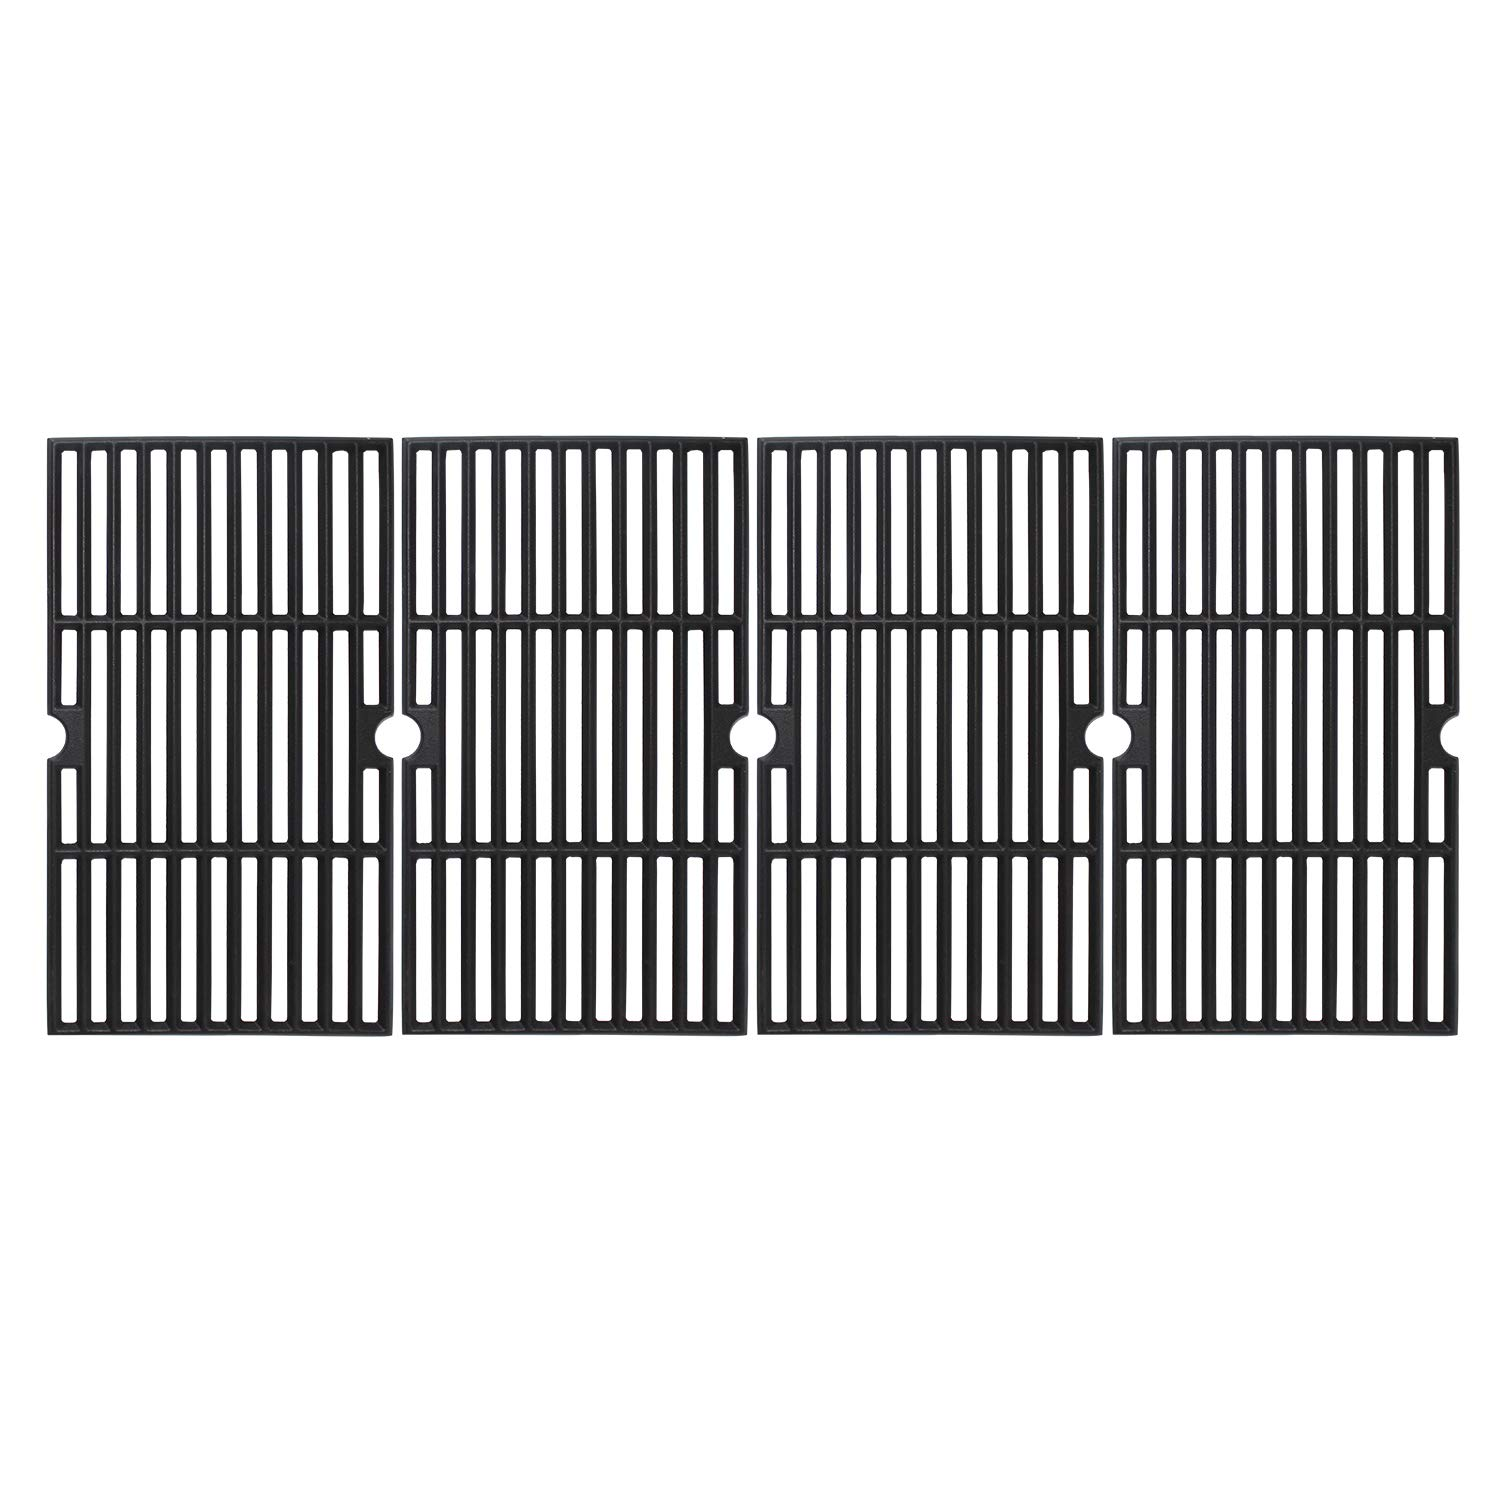 Grillflame 16 7/8 x 37 1/4'' Matte Enamel Cast Iron Cooking Grates for Charbroil 463230510, 463230511, 463230512, 463230513, 463230514, 463230710, 463234511